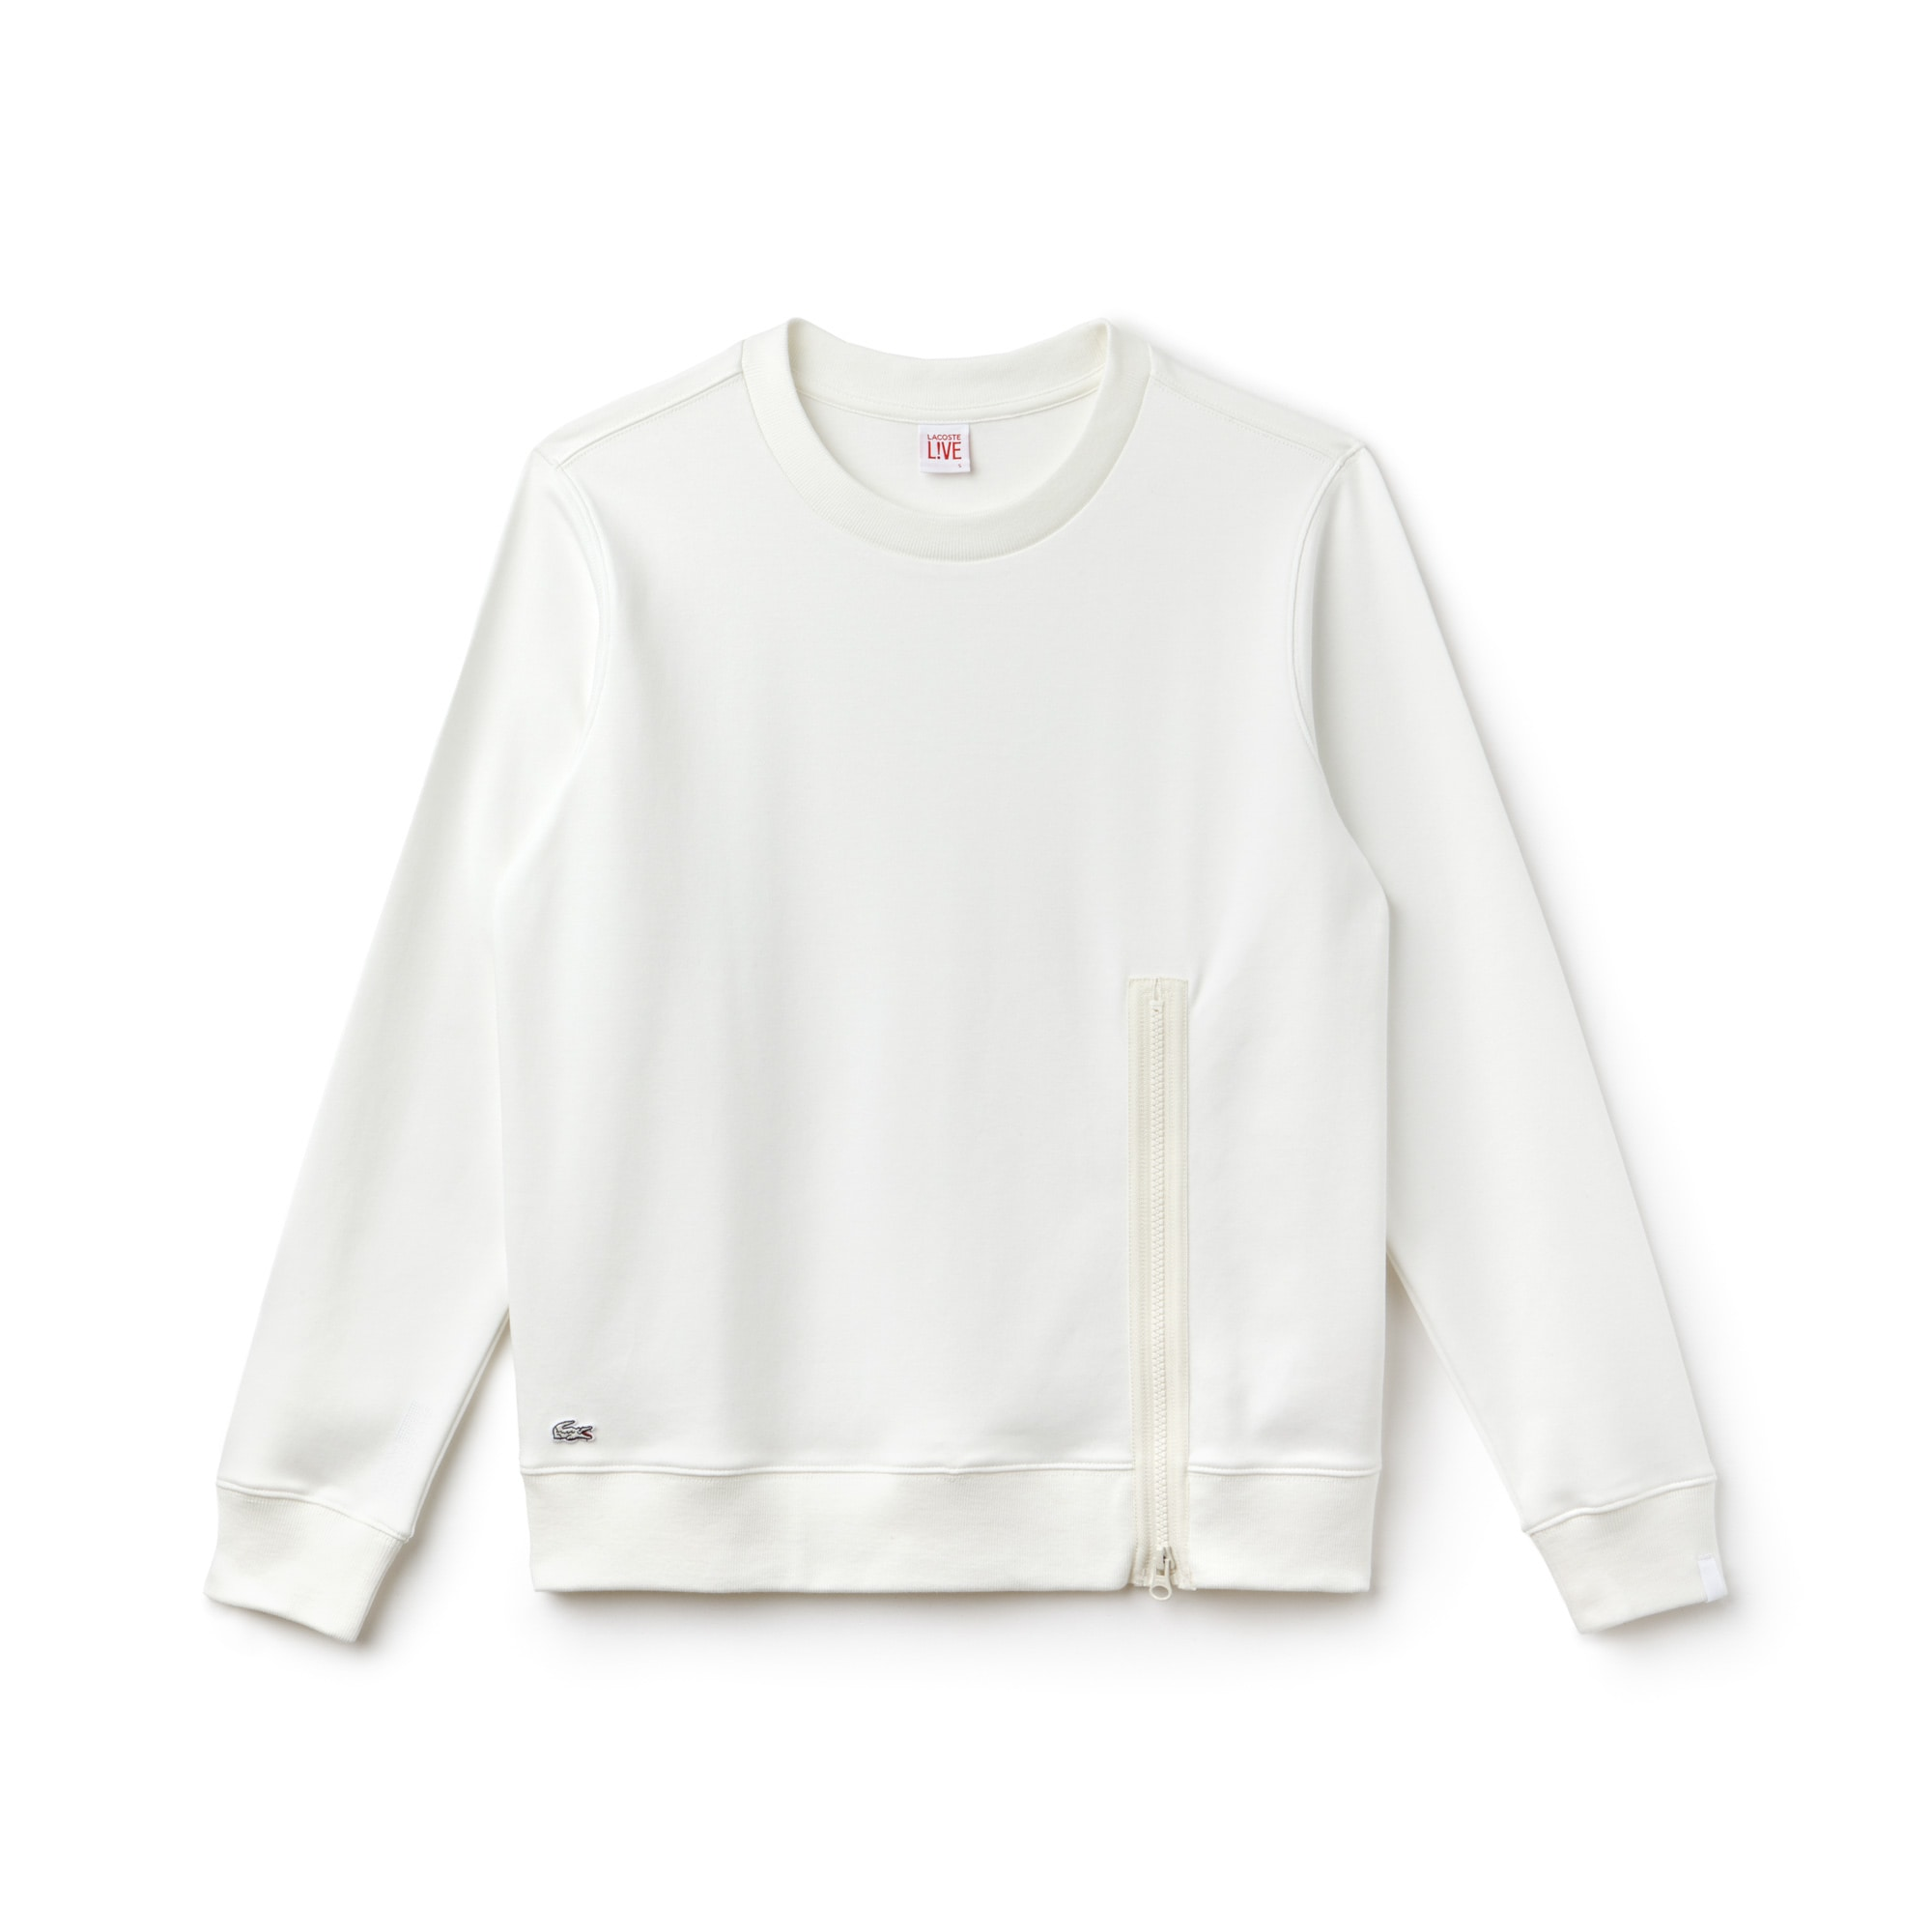 Women's Lacoste LIVE Crew Neck Interlock Zip Sweatshirt